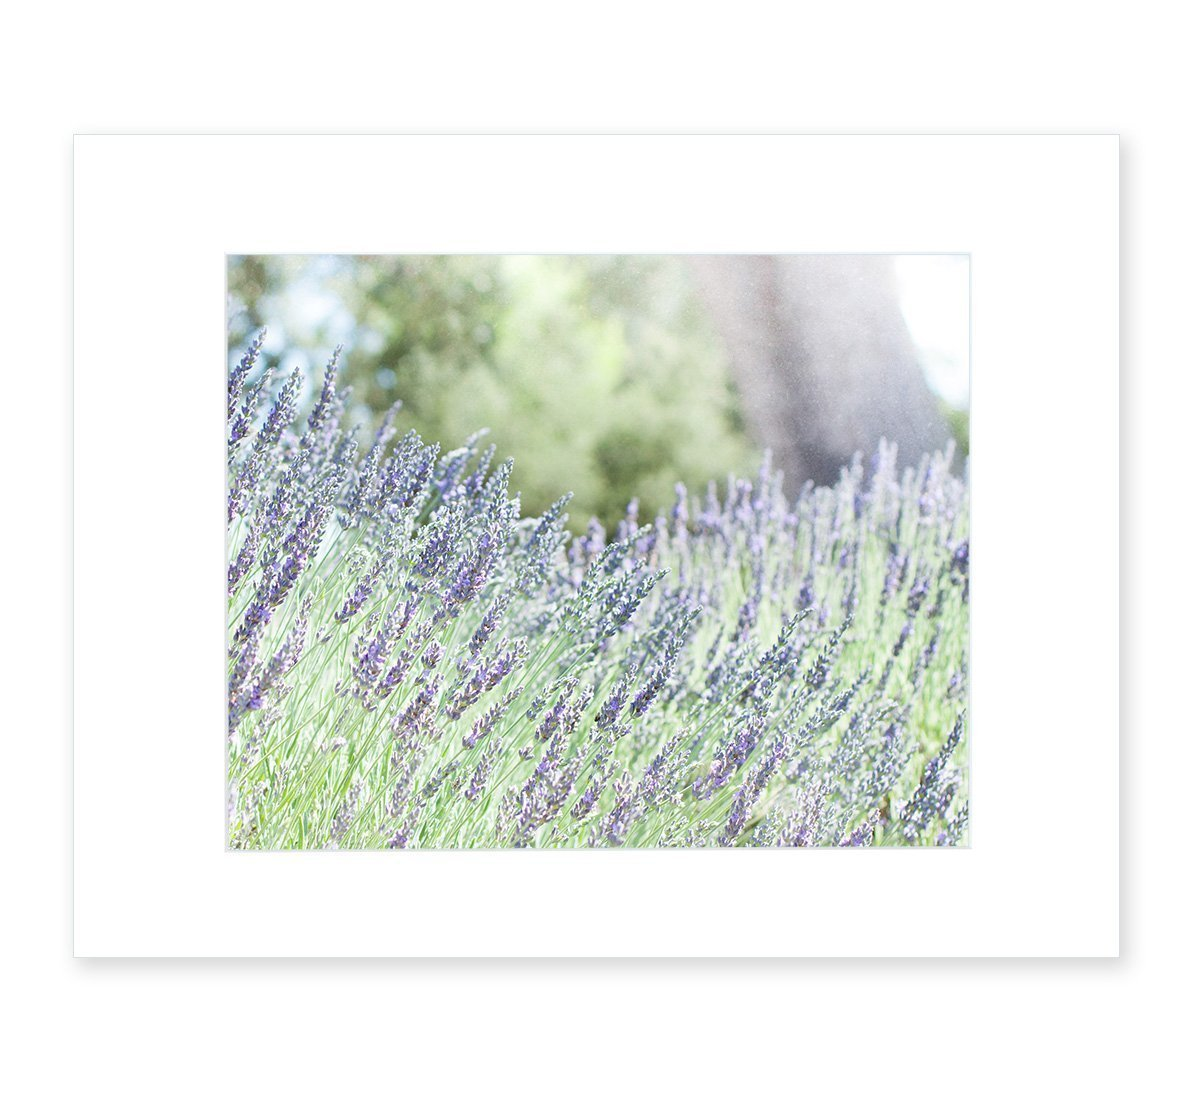 Rustic Wall Art Flowers, Purple Floral Lavender Decor, Farmhouse Country Cottage Picture, Wild Botanical Photography, 8x10 Matted Photographic Print, (fits 11x14 frame) 'Fields of Lavender' by Offley Green